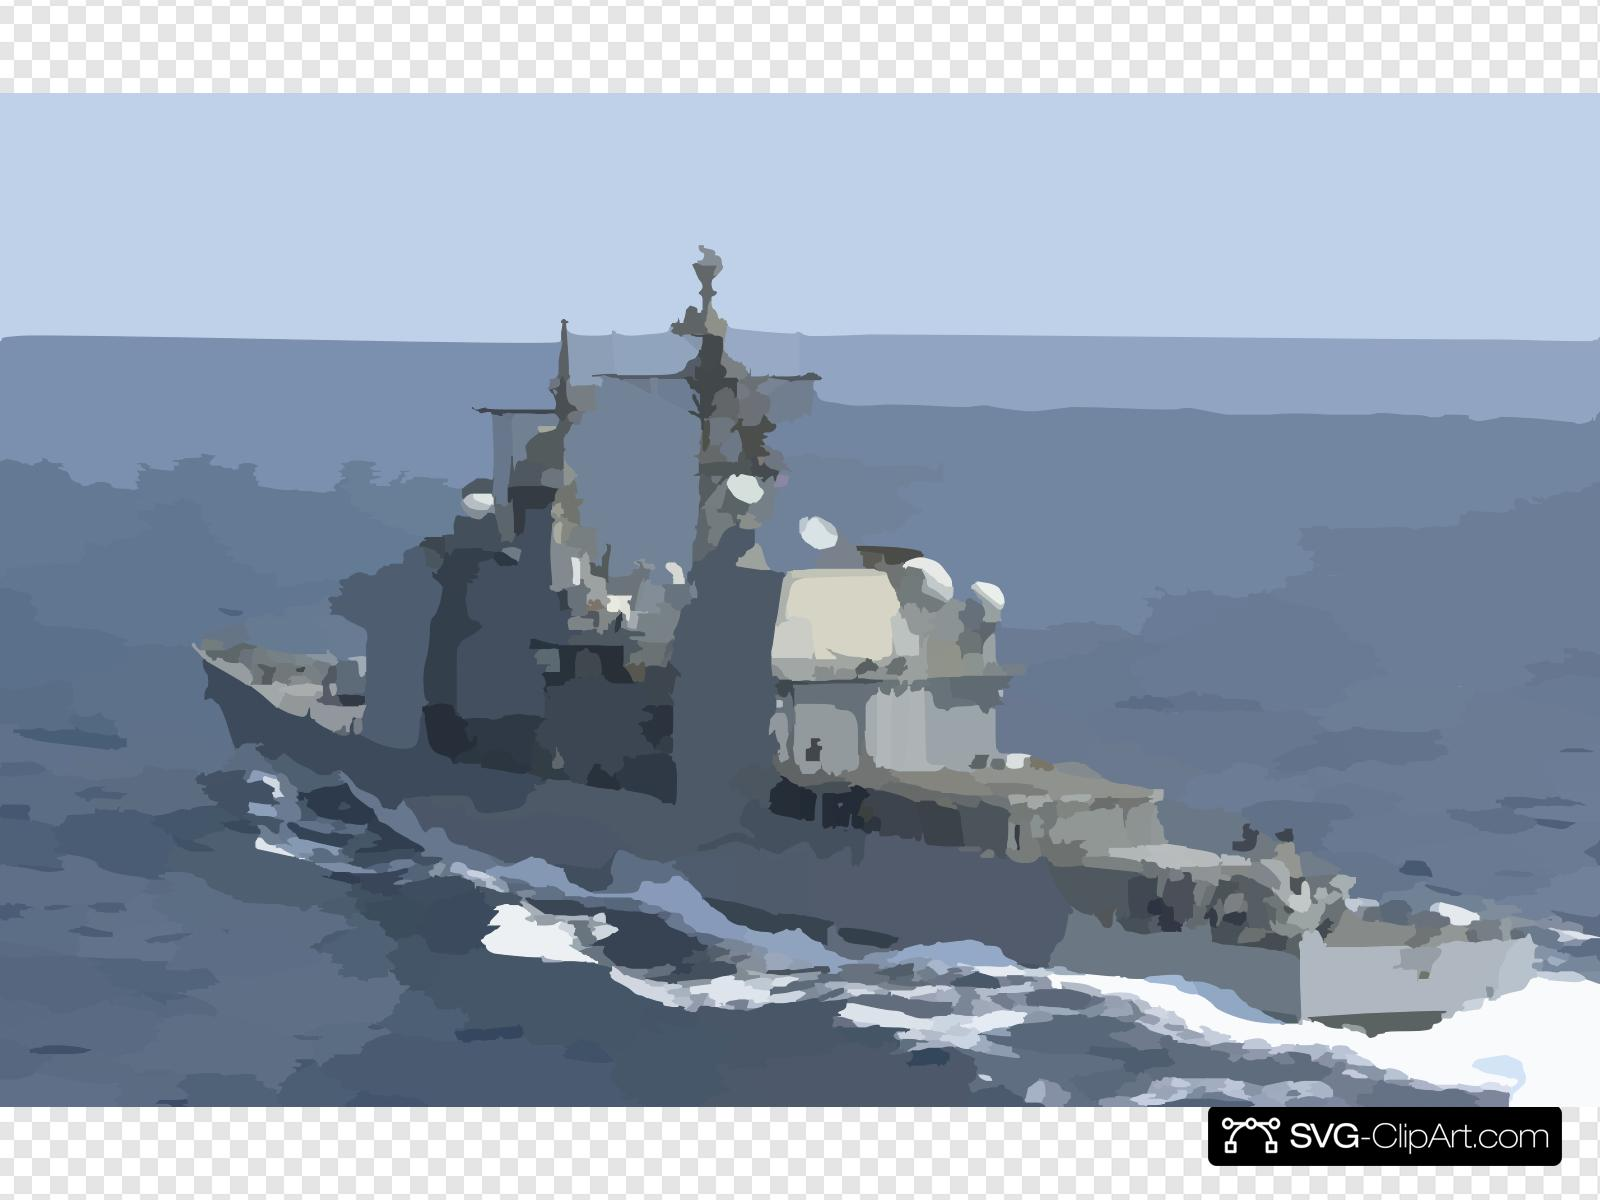 The Guided Missile Cruiser Uss Chosin (cg 65) Steams Away.